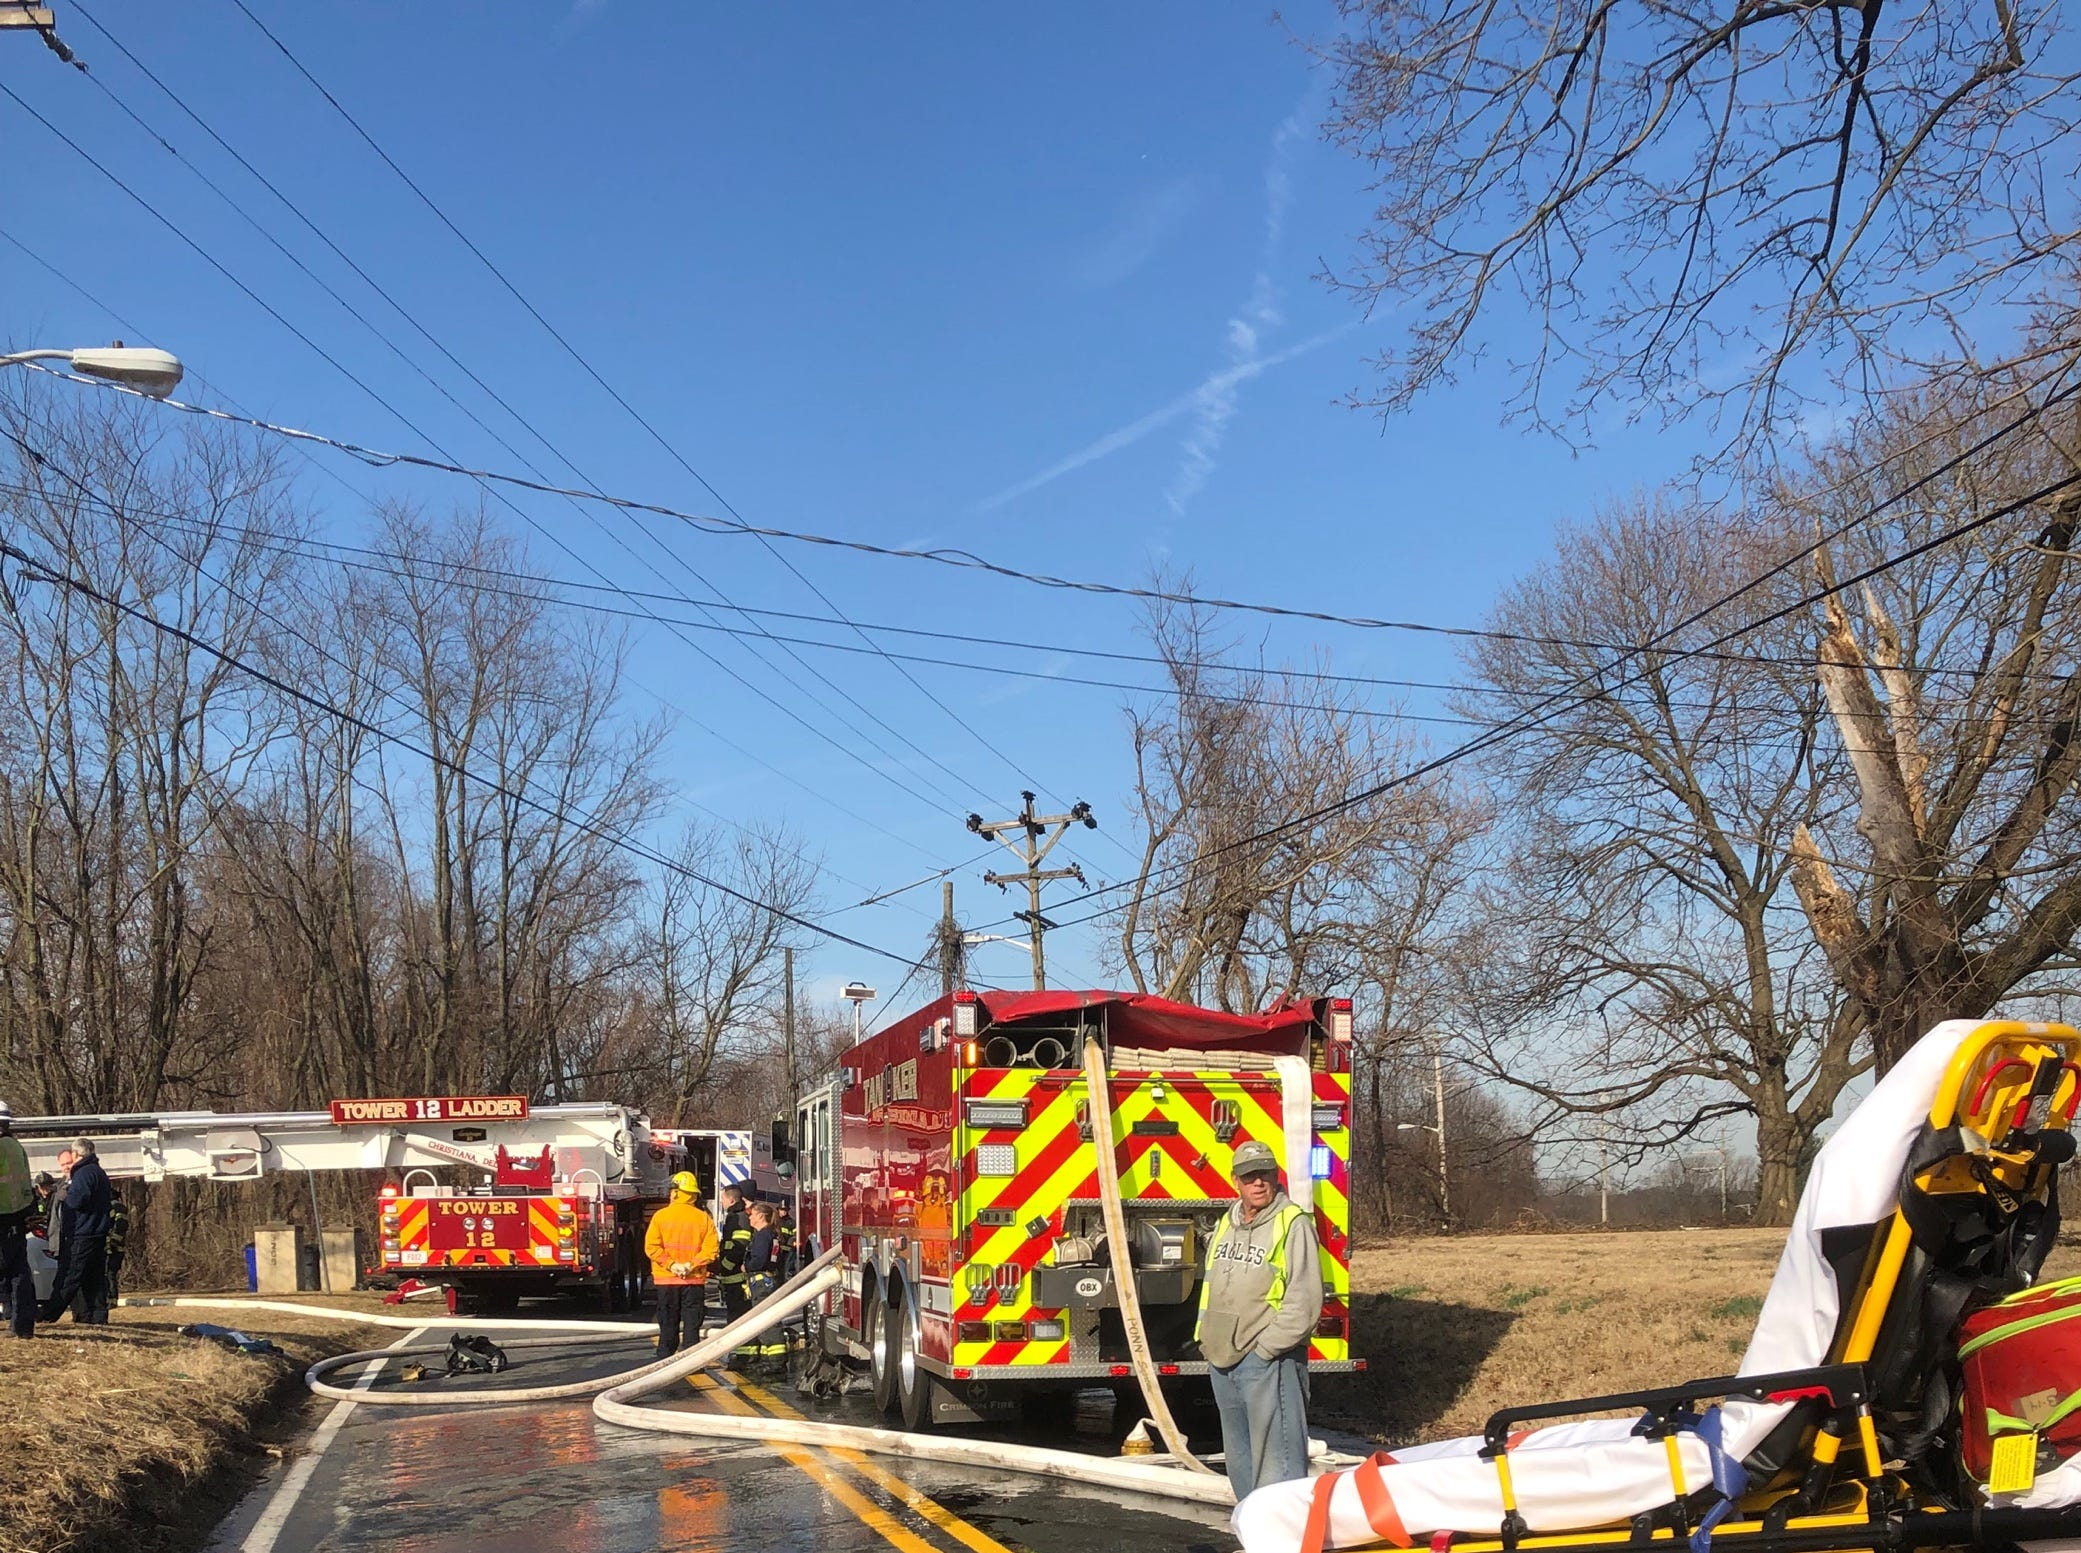 Firefighters work at the scene of a blaze on Thursday at a home in Milltown.